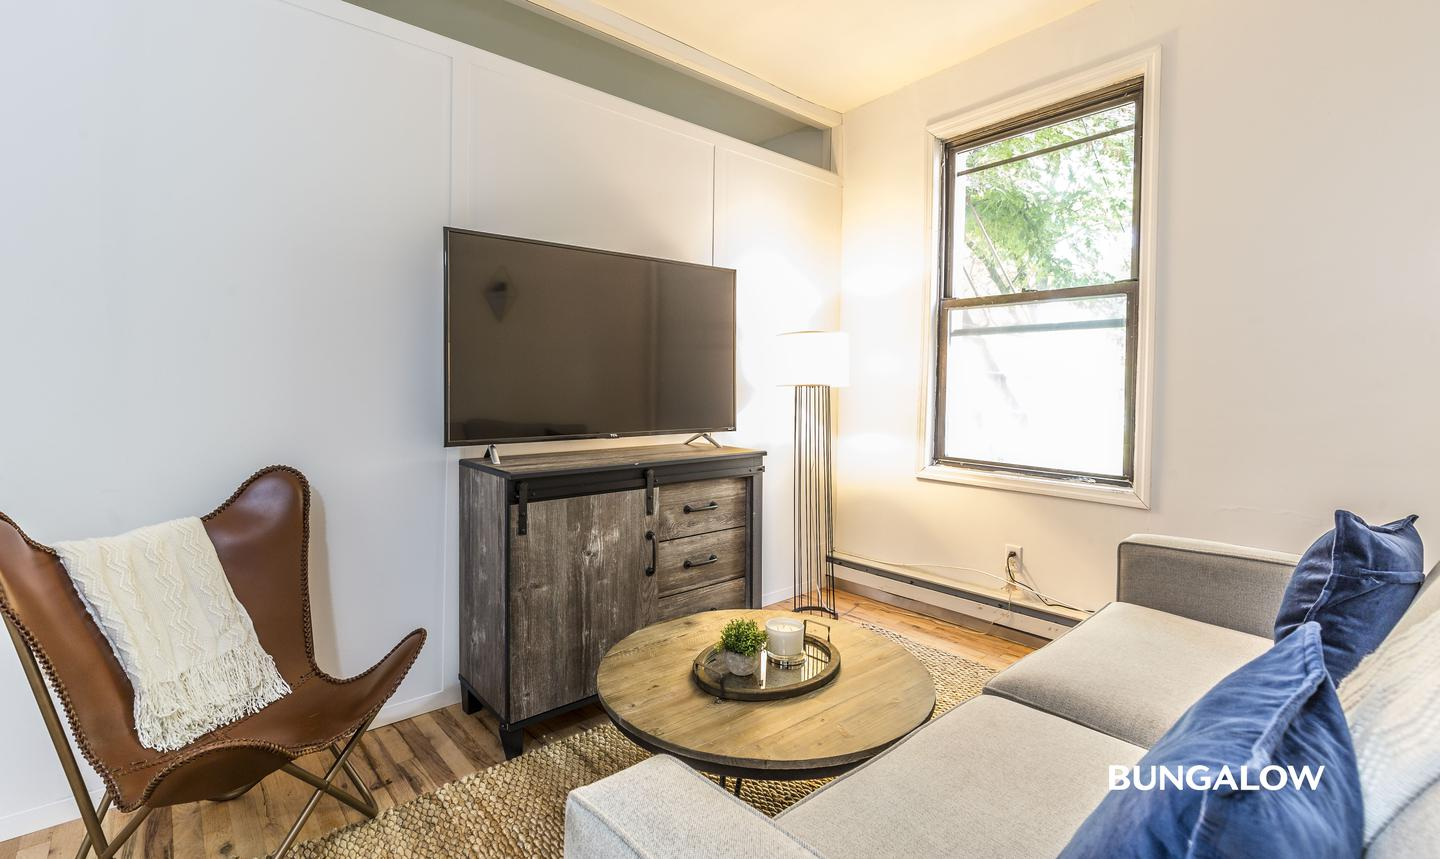 Apartments Near Baruch Private Bedroom in Classic Williamsburg Apartment With Easy Access to the L/M/J/G for Bernard M Baruch College Students in New York, NY